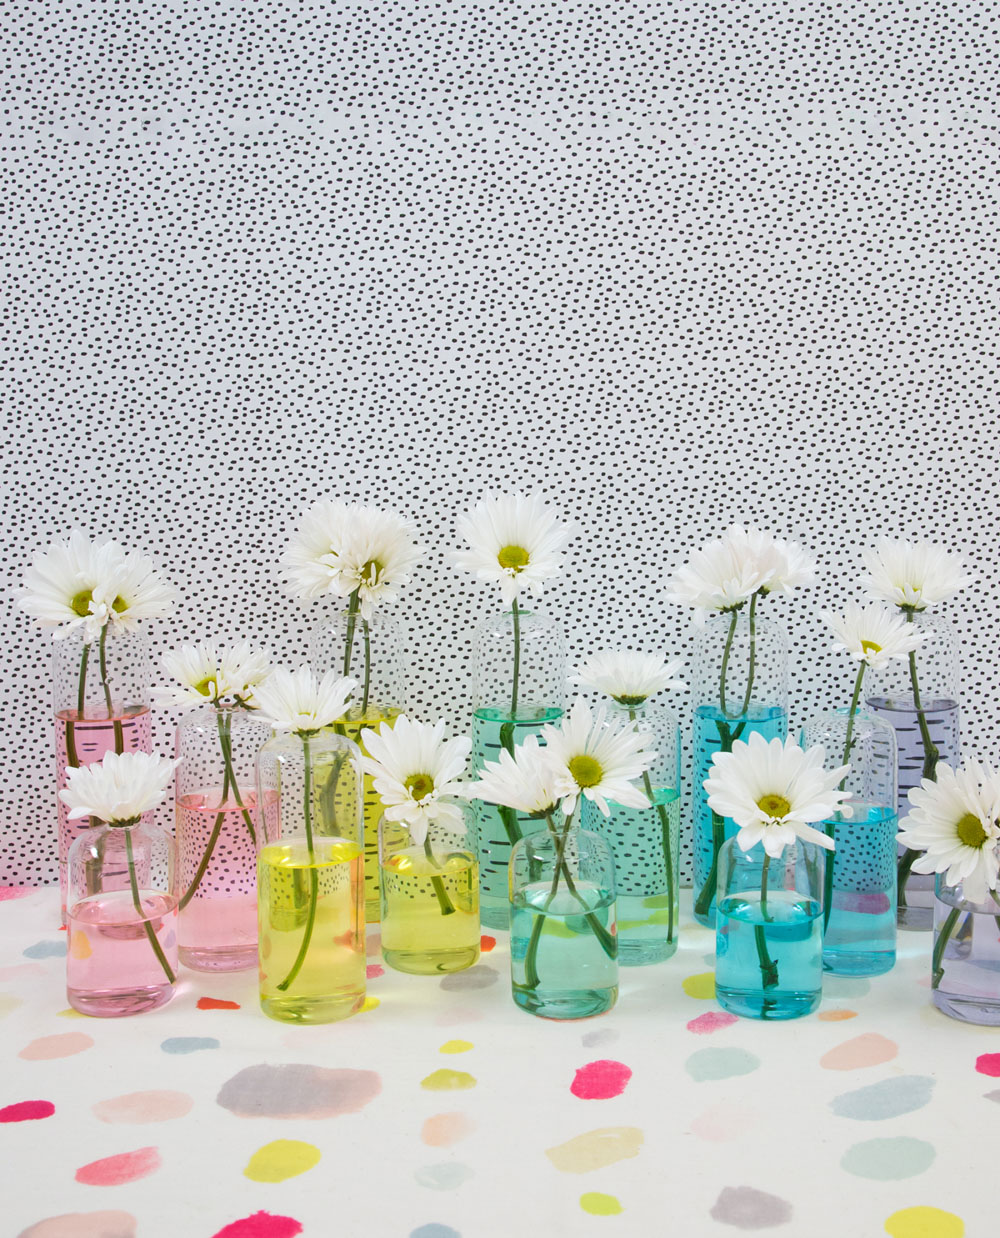 Vases filled with colorful water